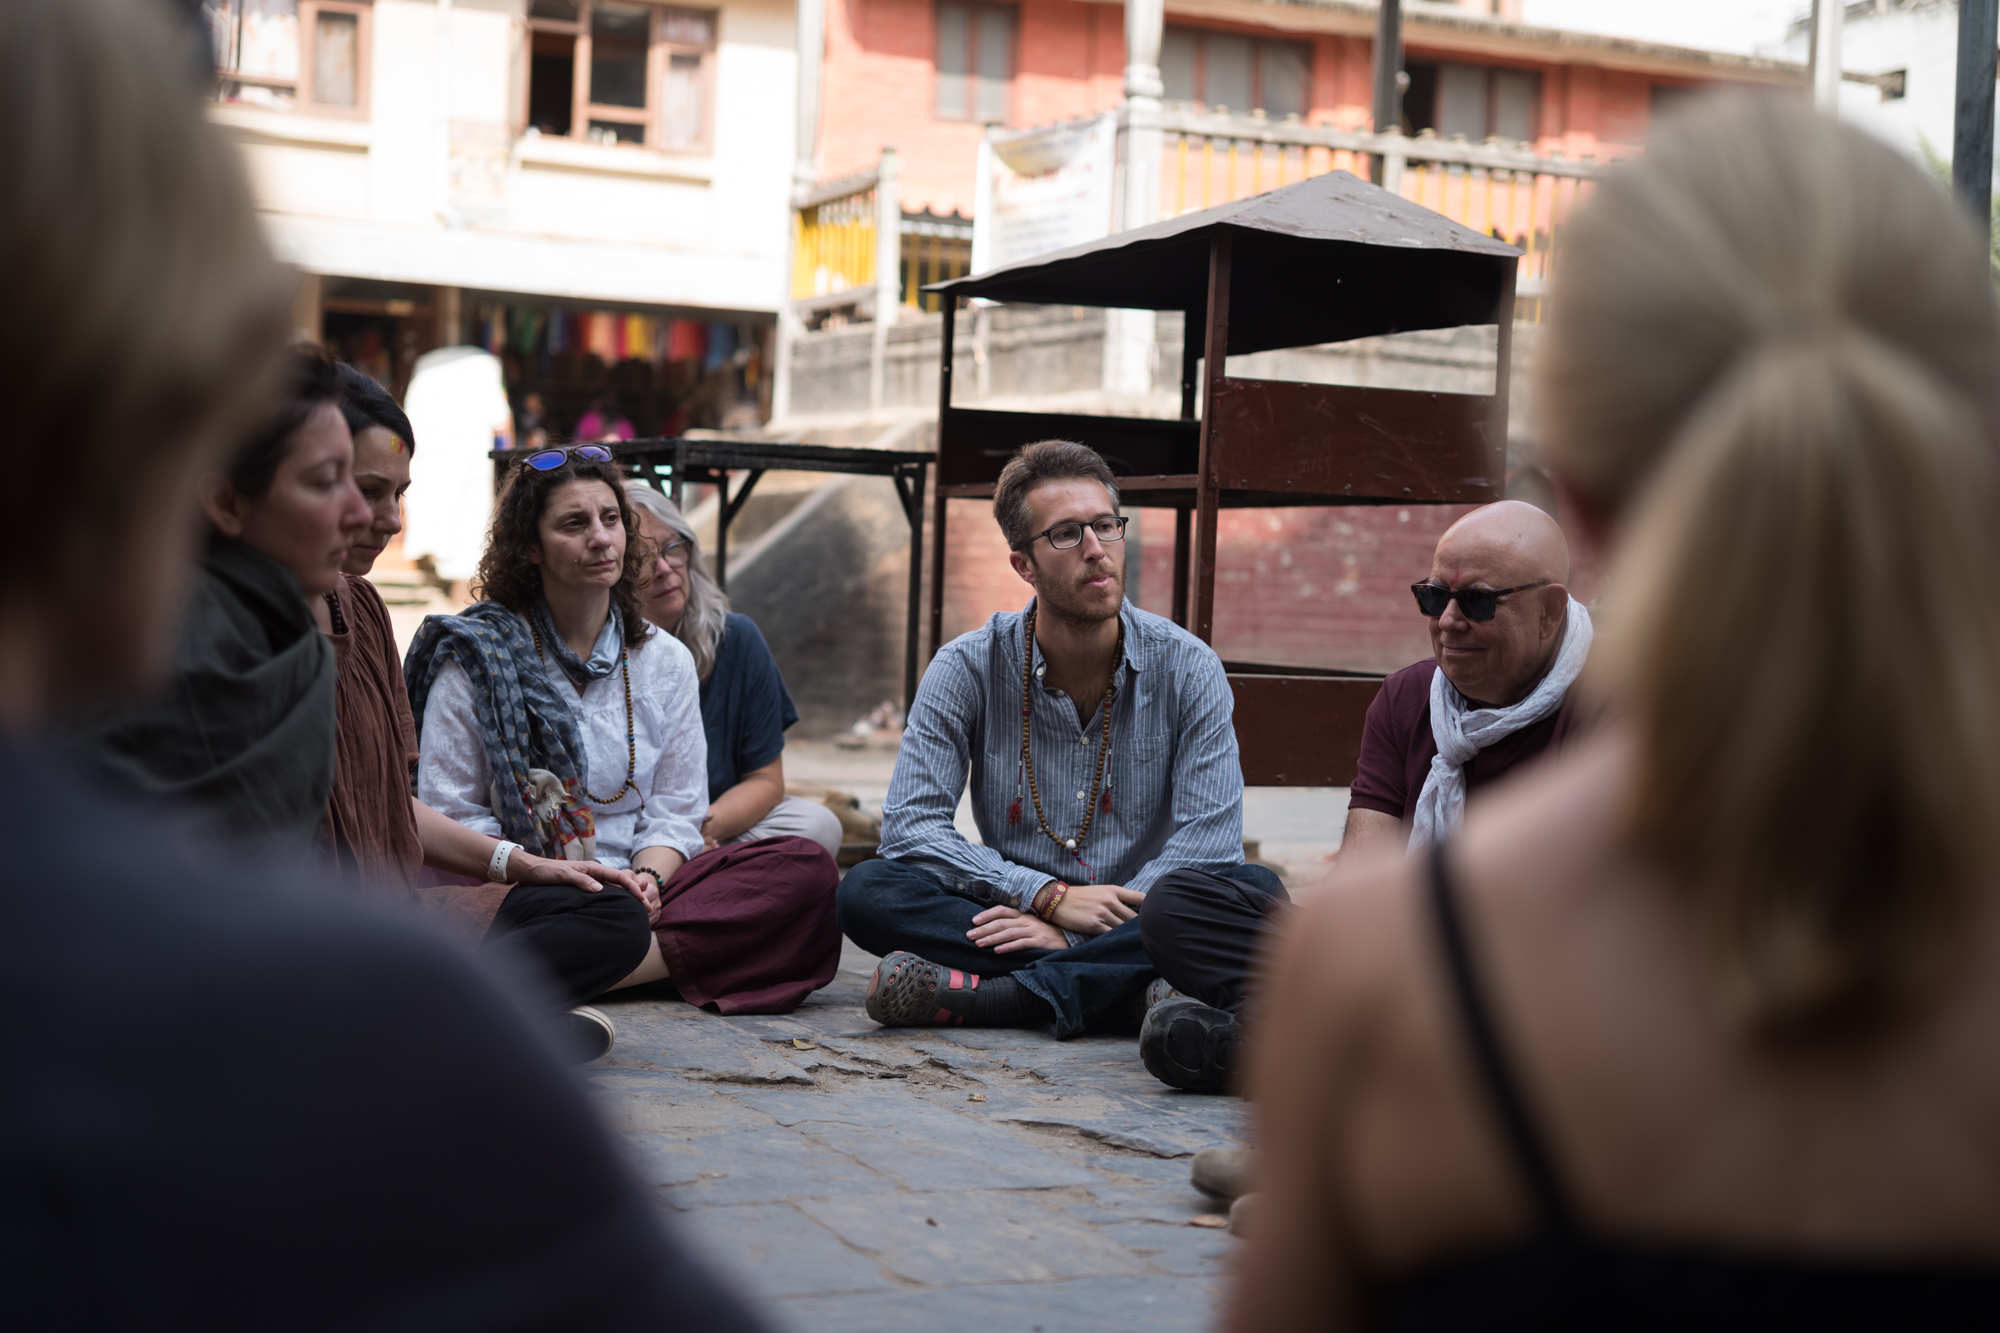 Nepal_Phill O'Leary_37_20181005-L1009859.jpg